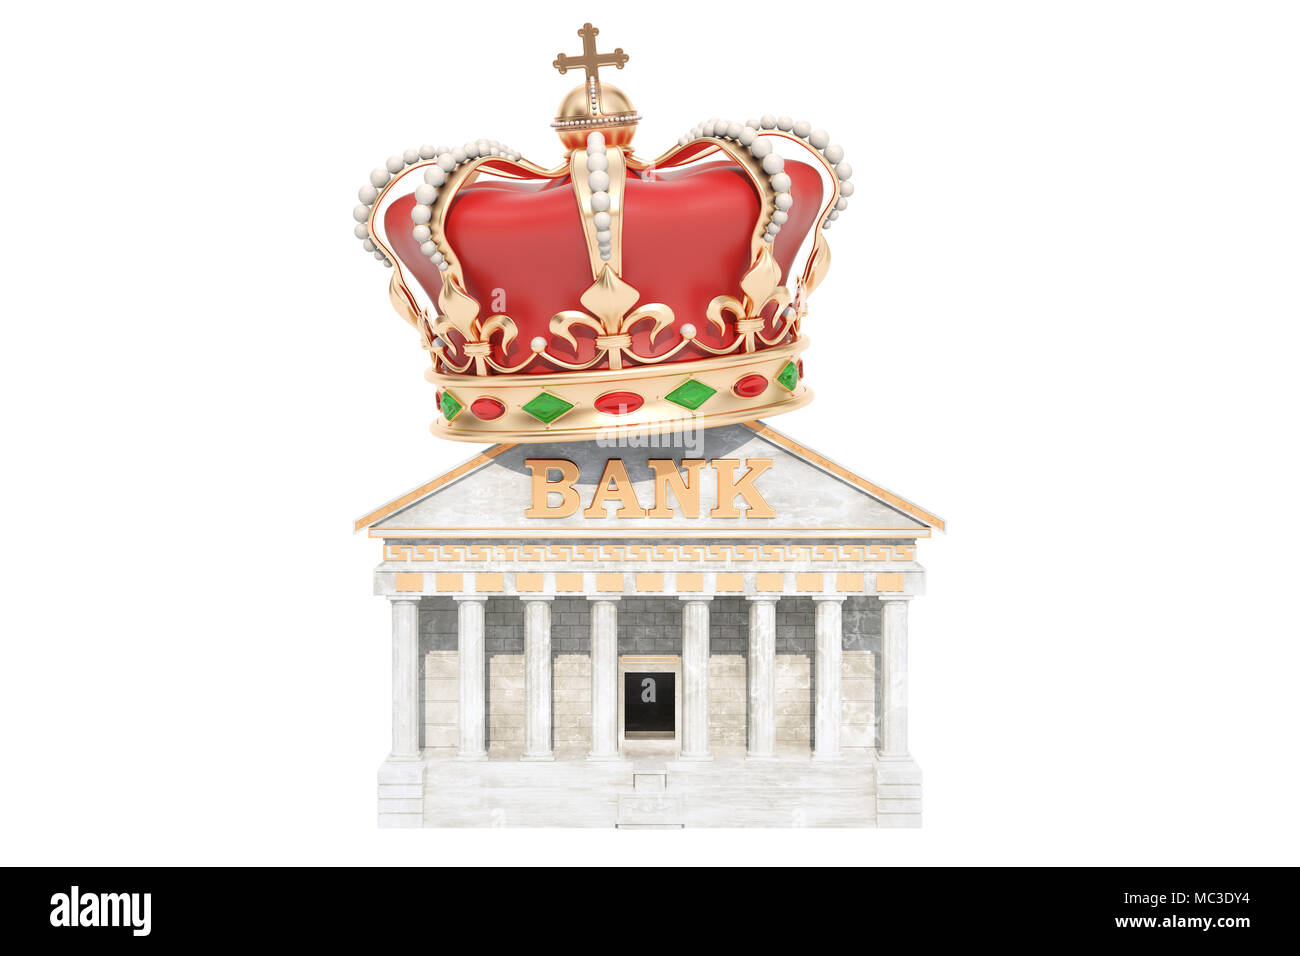 Bank with royal crown, 3D rendering isolated on white background - Stock Image